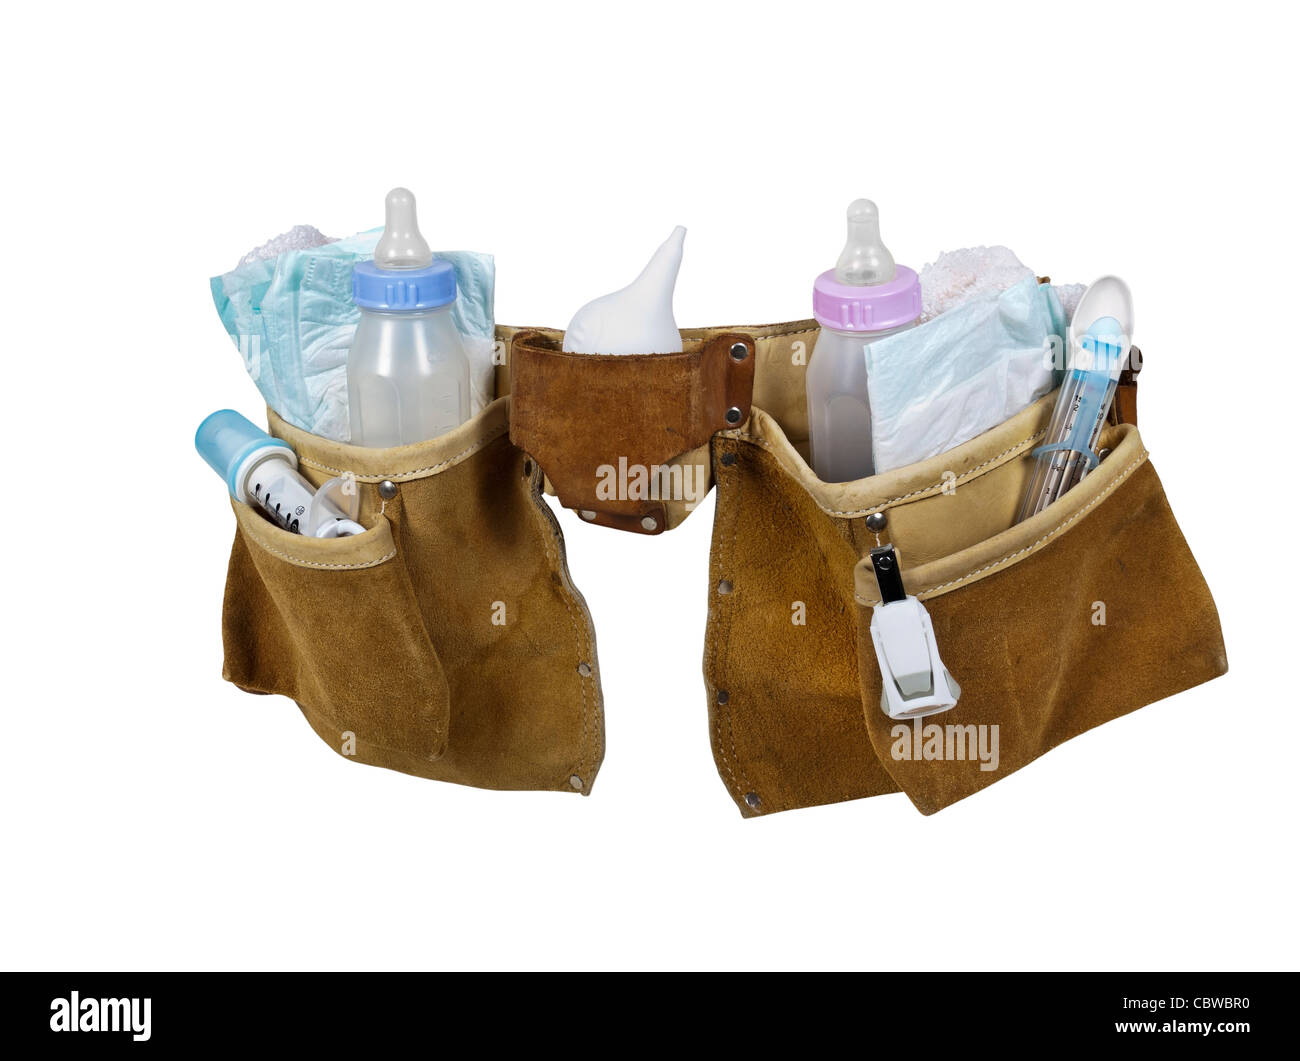 Baby items filling a leather tool belt for carrying items conveniently while working - path included - Stock Image